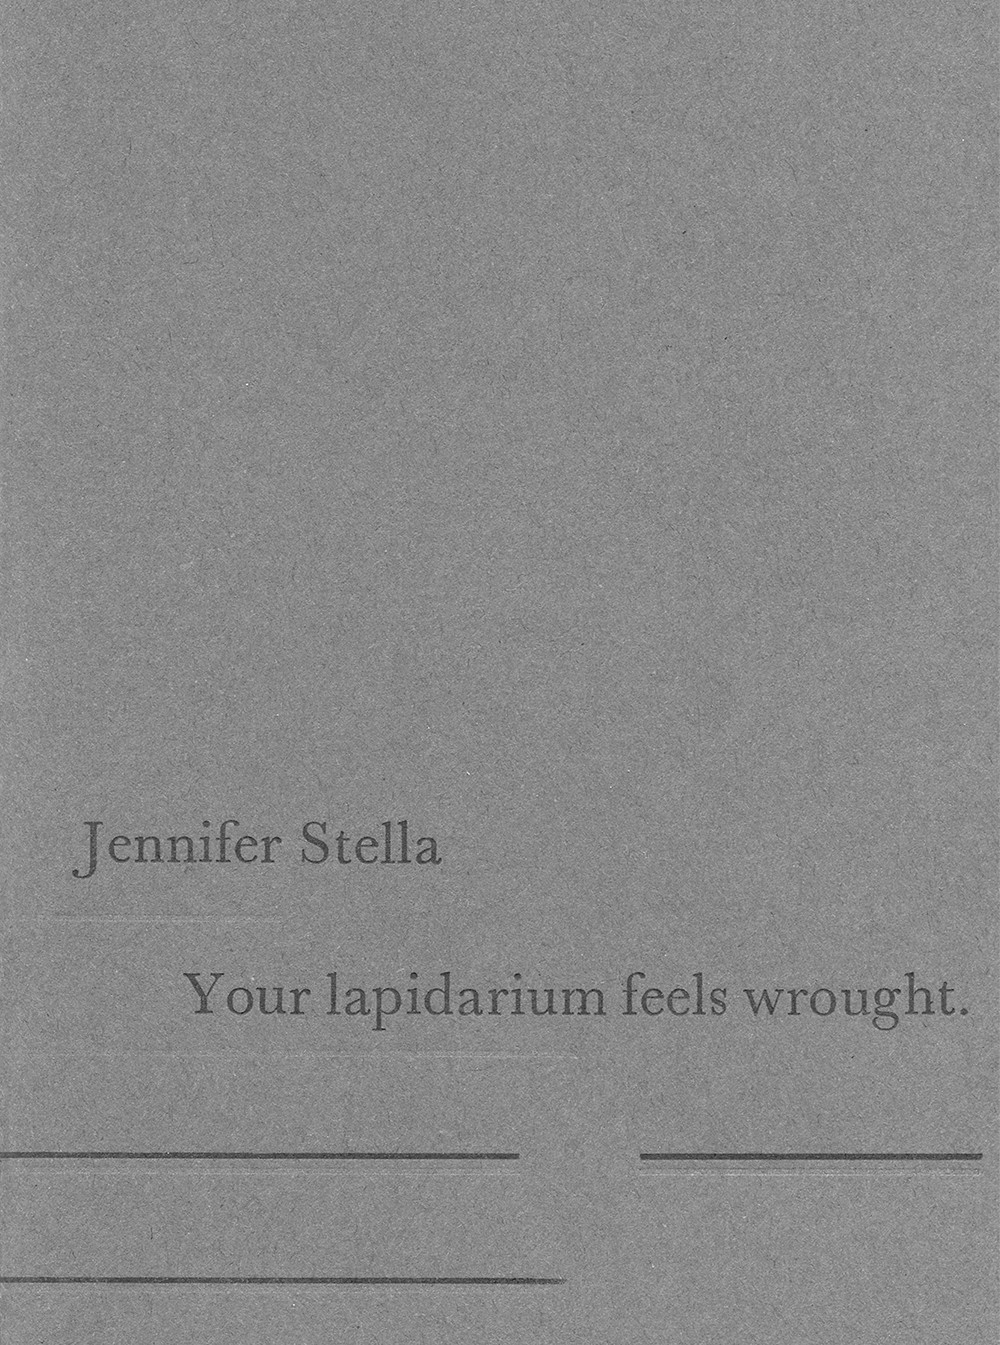 Stella Black Review Poetry Review Your Lapidarium Feels Wrought By Jennifer Stella